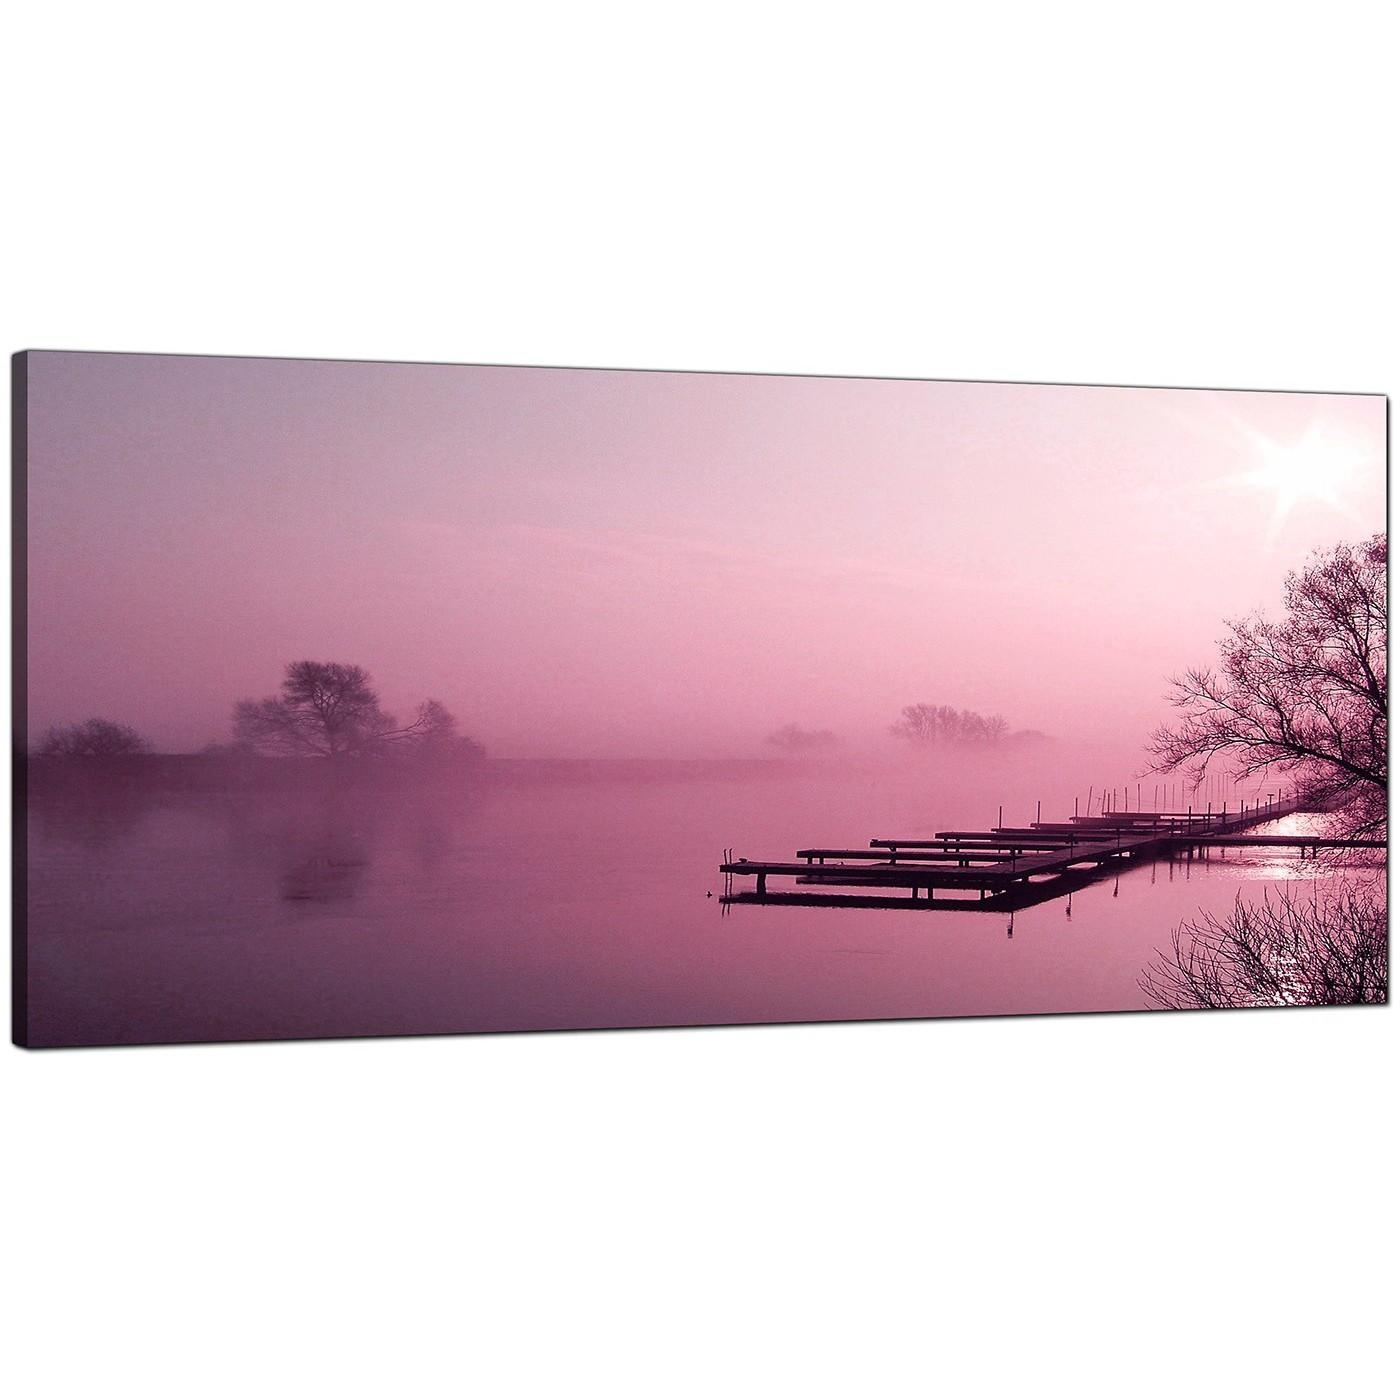 Cheap Plum Canvas Prints Of A River Landscape Pertaining To Plum Coloured Wall Art (Image 4 of 20)